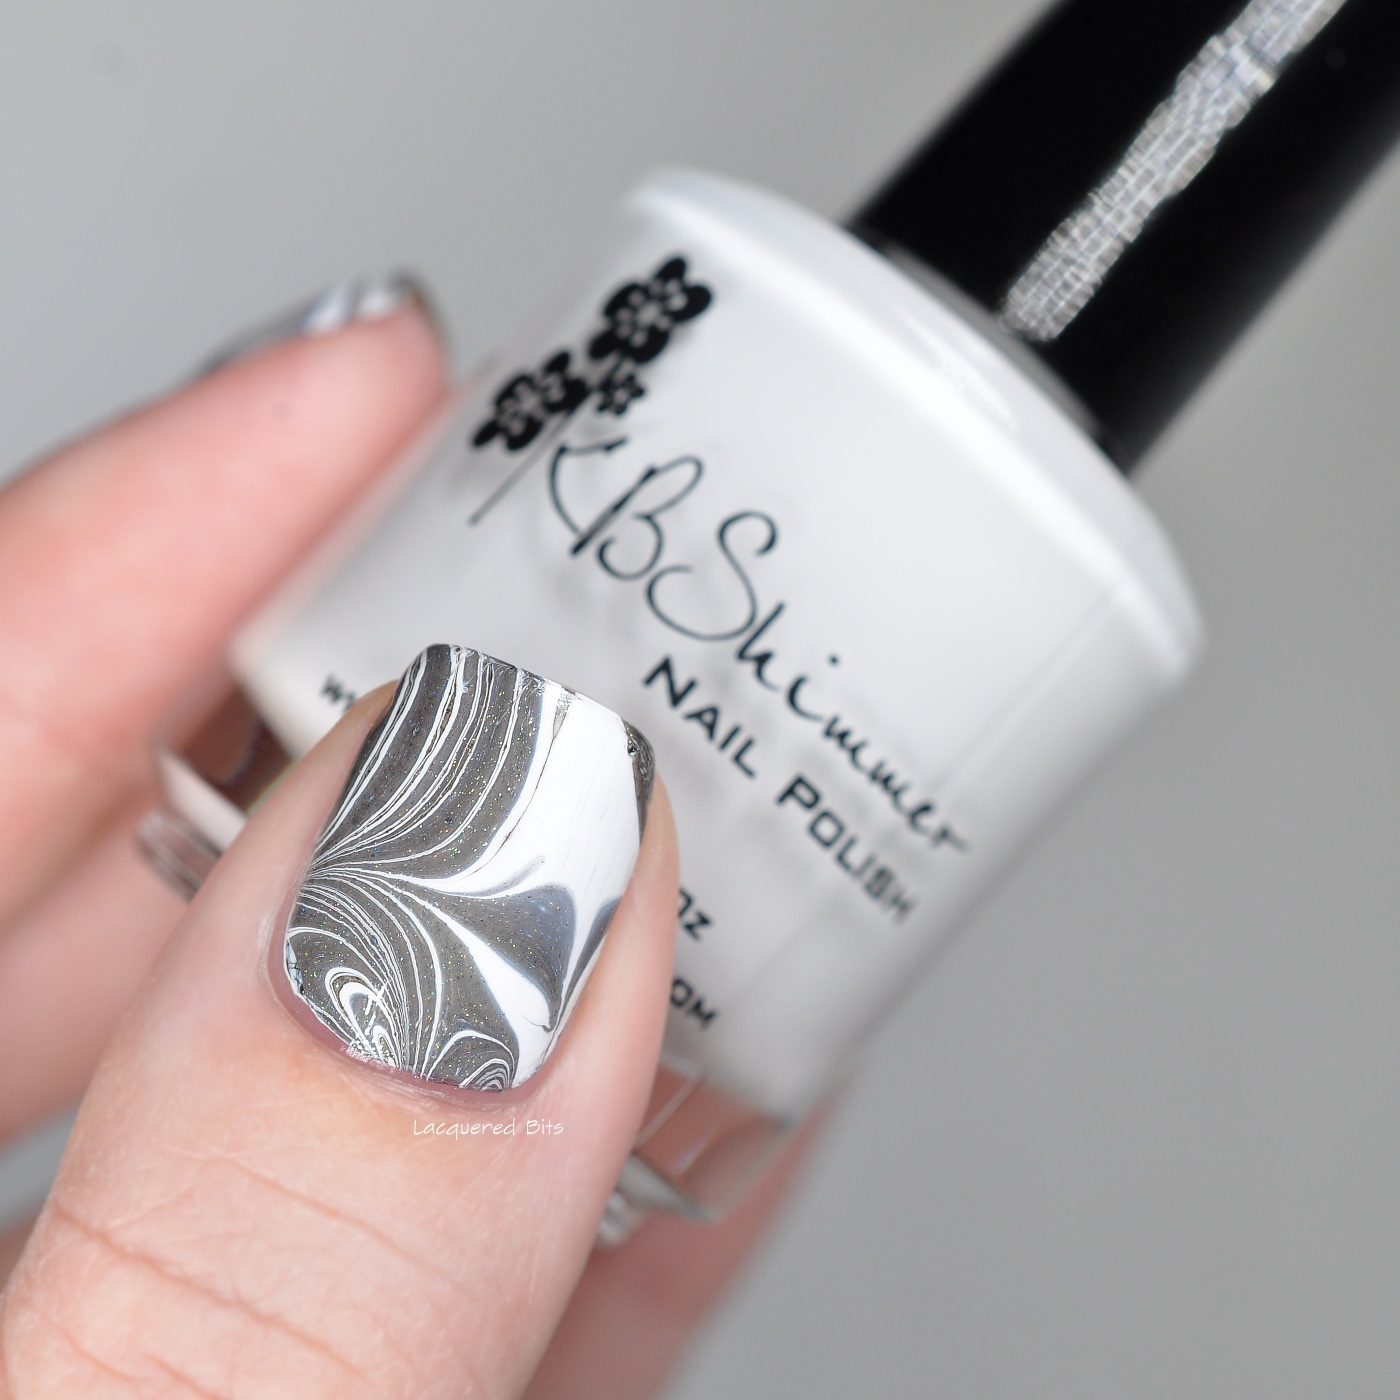 White and Black Water Marble Nails